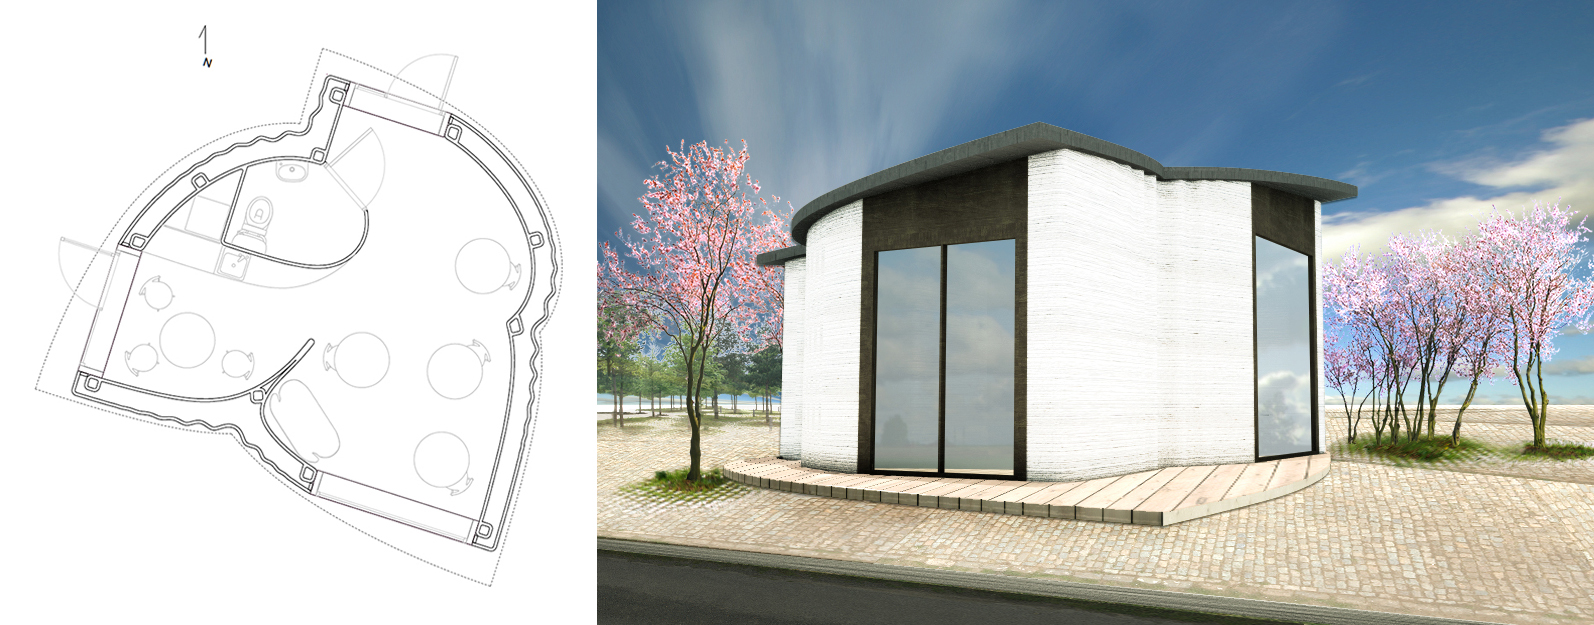 The BOD - Europes first 3D printed building - plan and render